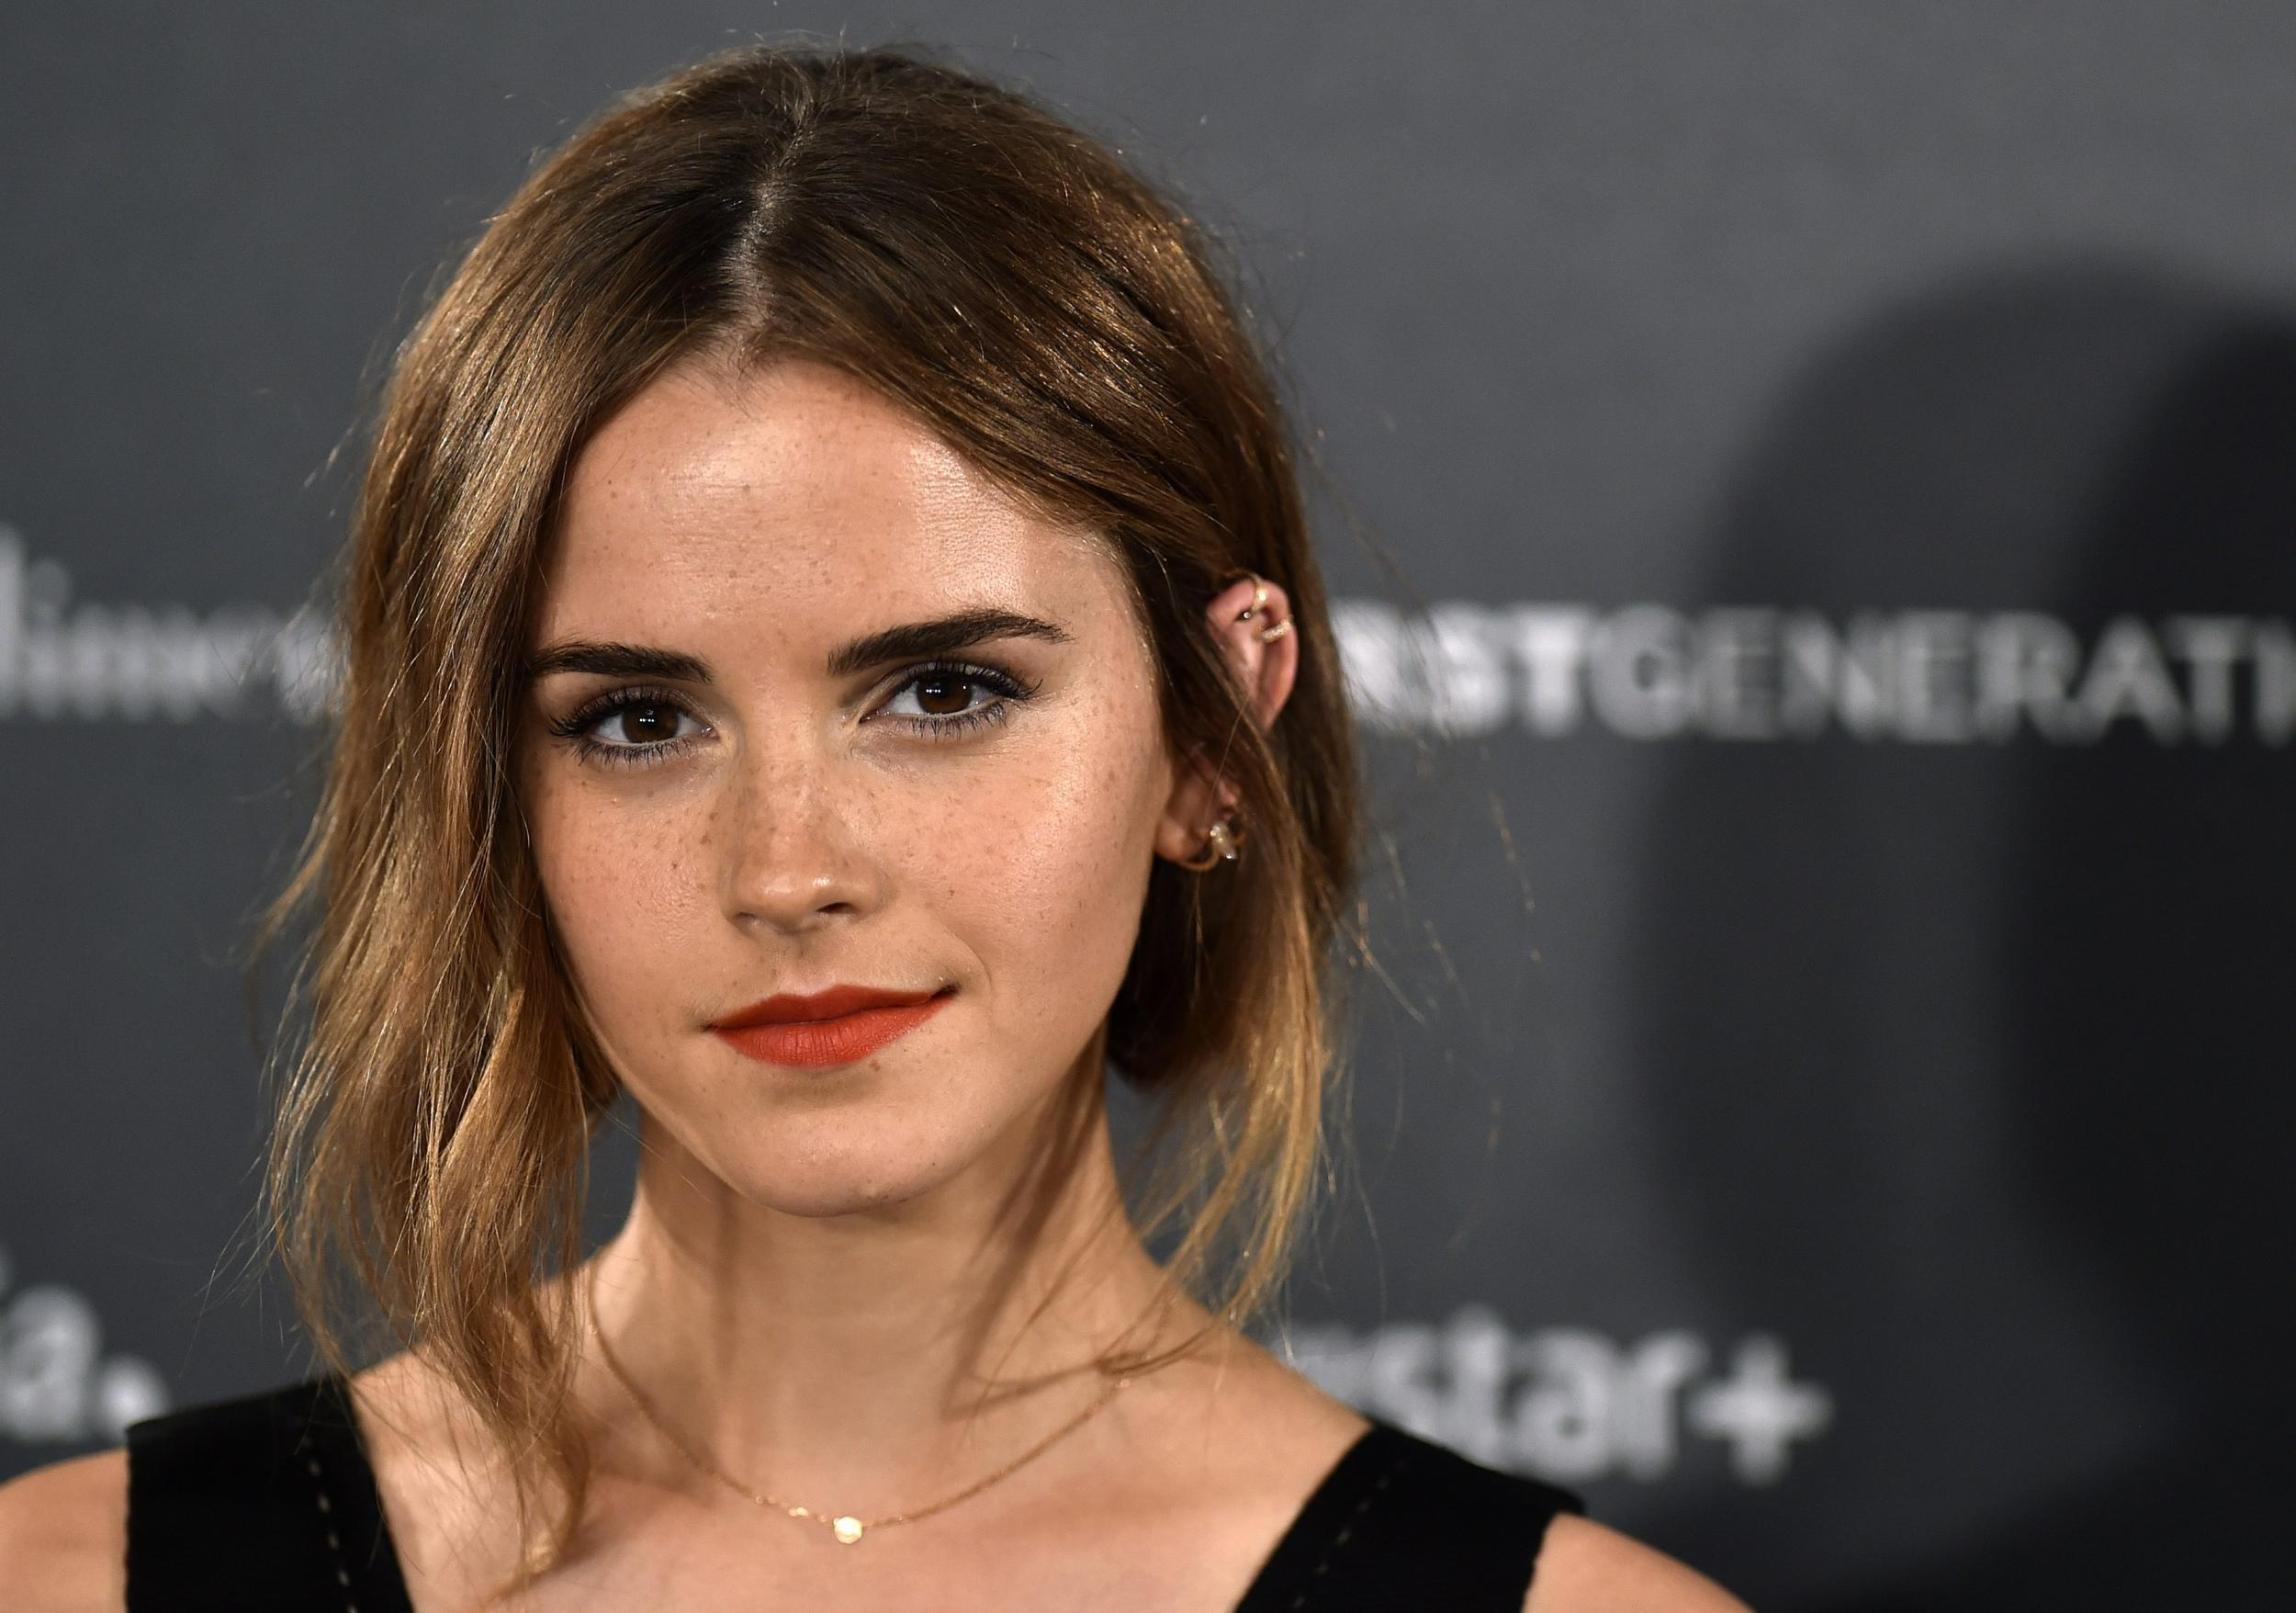 Emma Watson Creates Instagram Account To Promote Ethical Clothing On Beauty And The Beast Tour